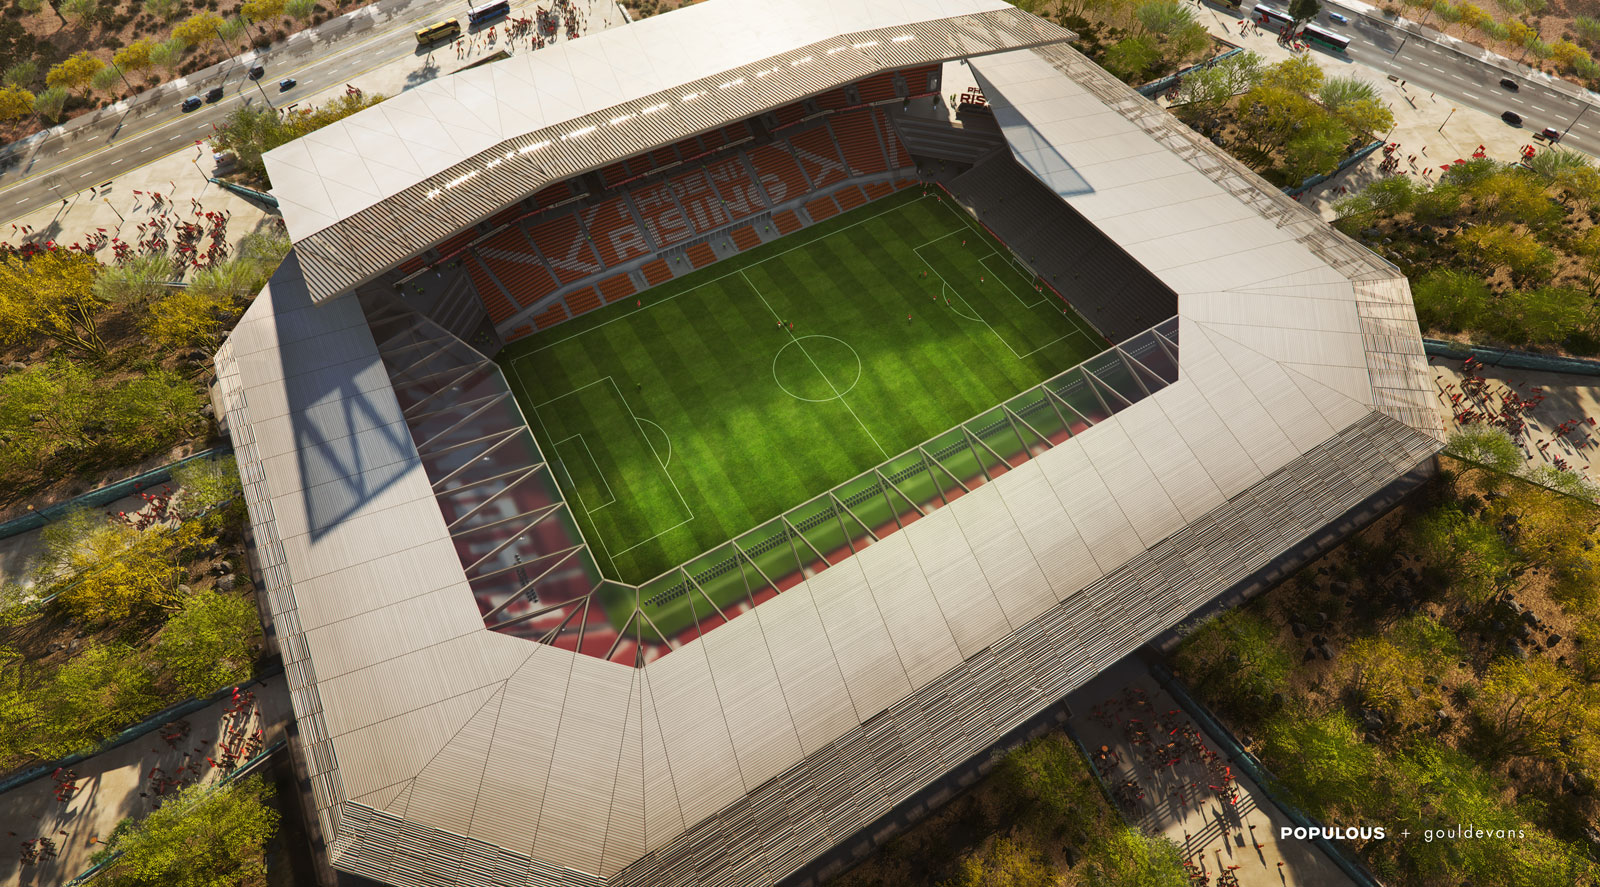 Phoenix Rising's ownership group is aiming for an MLS franchise